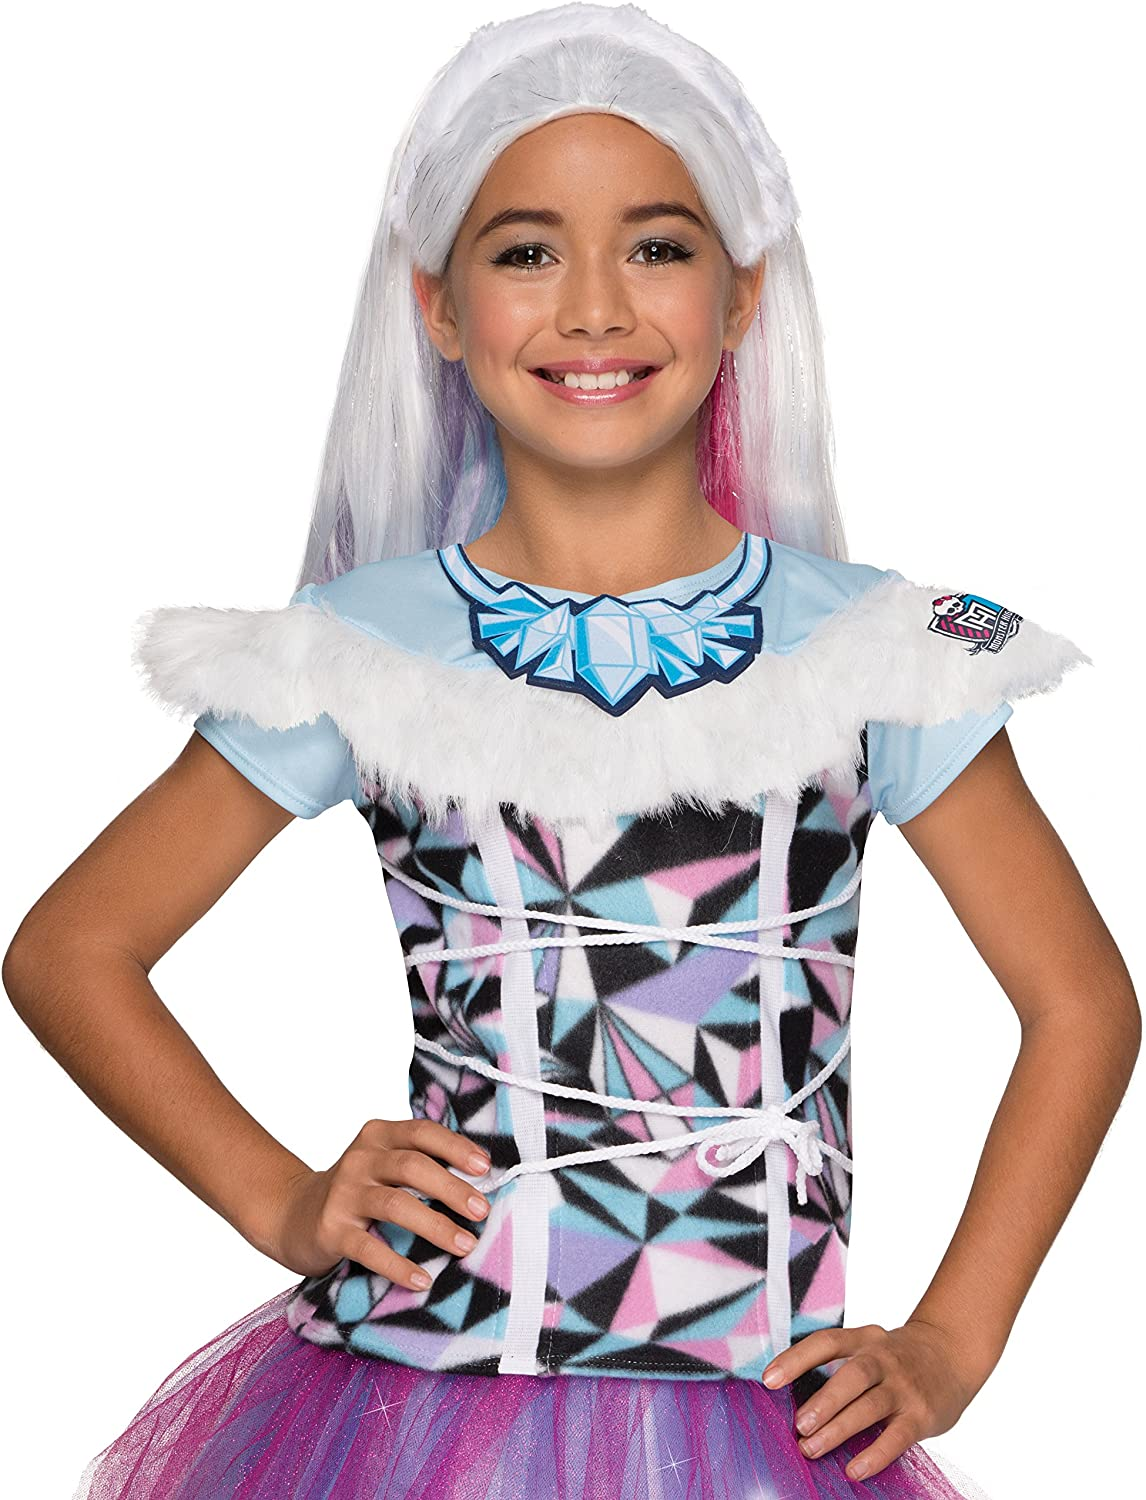 Rubies Costume Monster High Abbey Bominable Photo Real Costume Top Costume, Standard